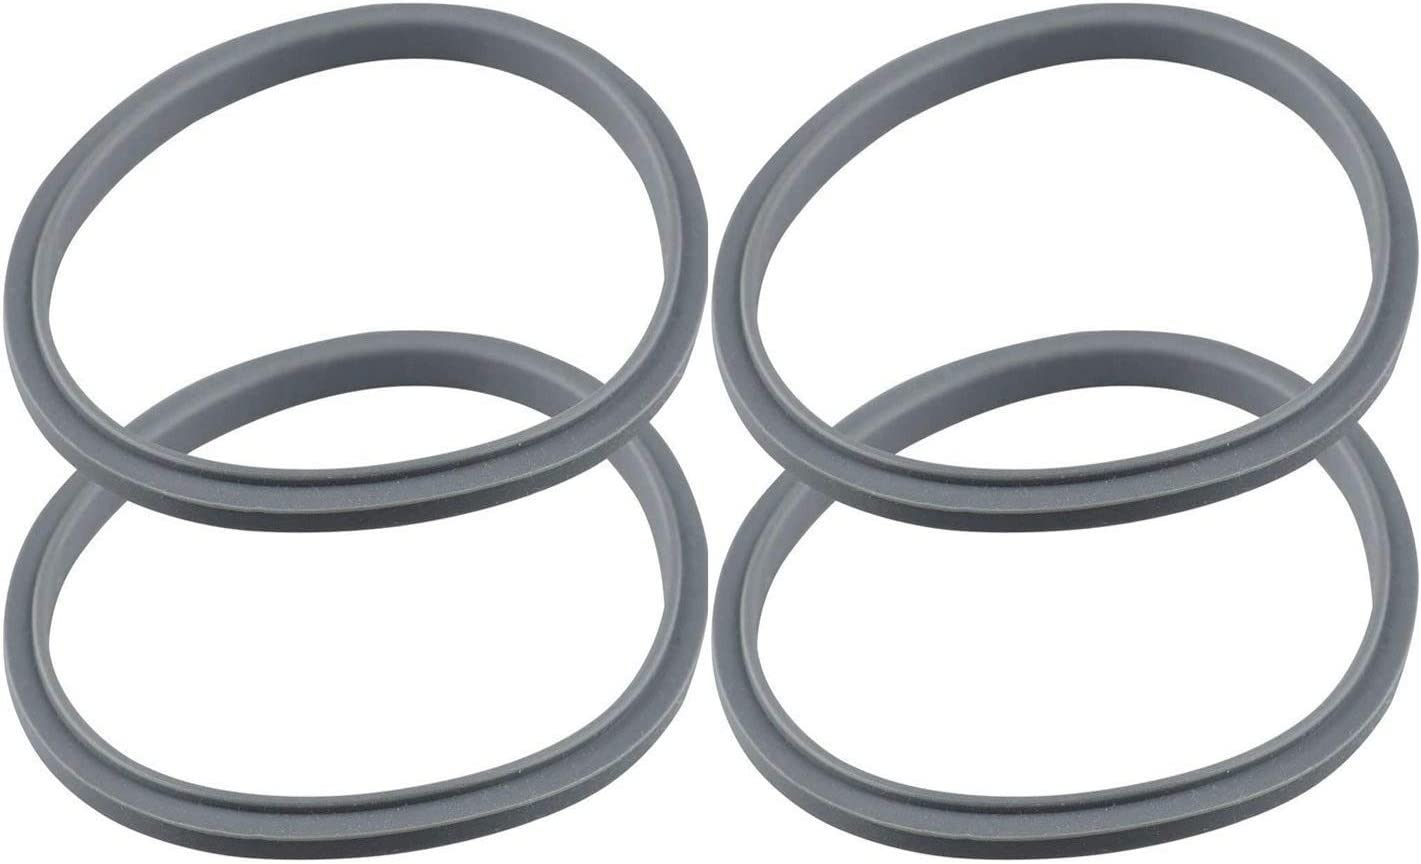 BidiHome 4 Pack Gasket Replacement Parts Compatible with Nutribullet 600W – 900W High-Speed Blender/Mixer System Replacement Parts & Accessories